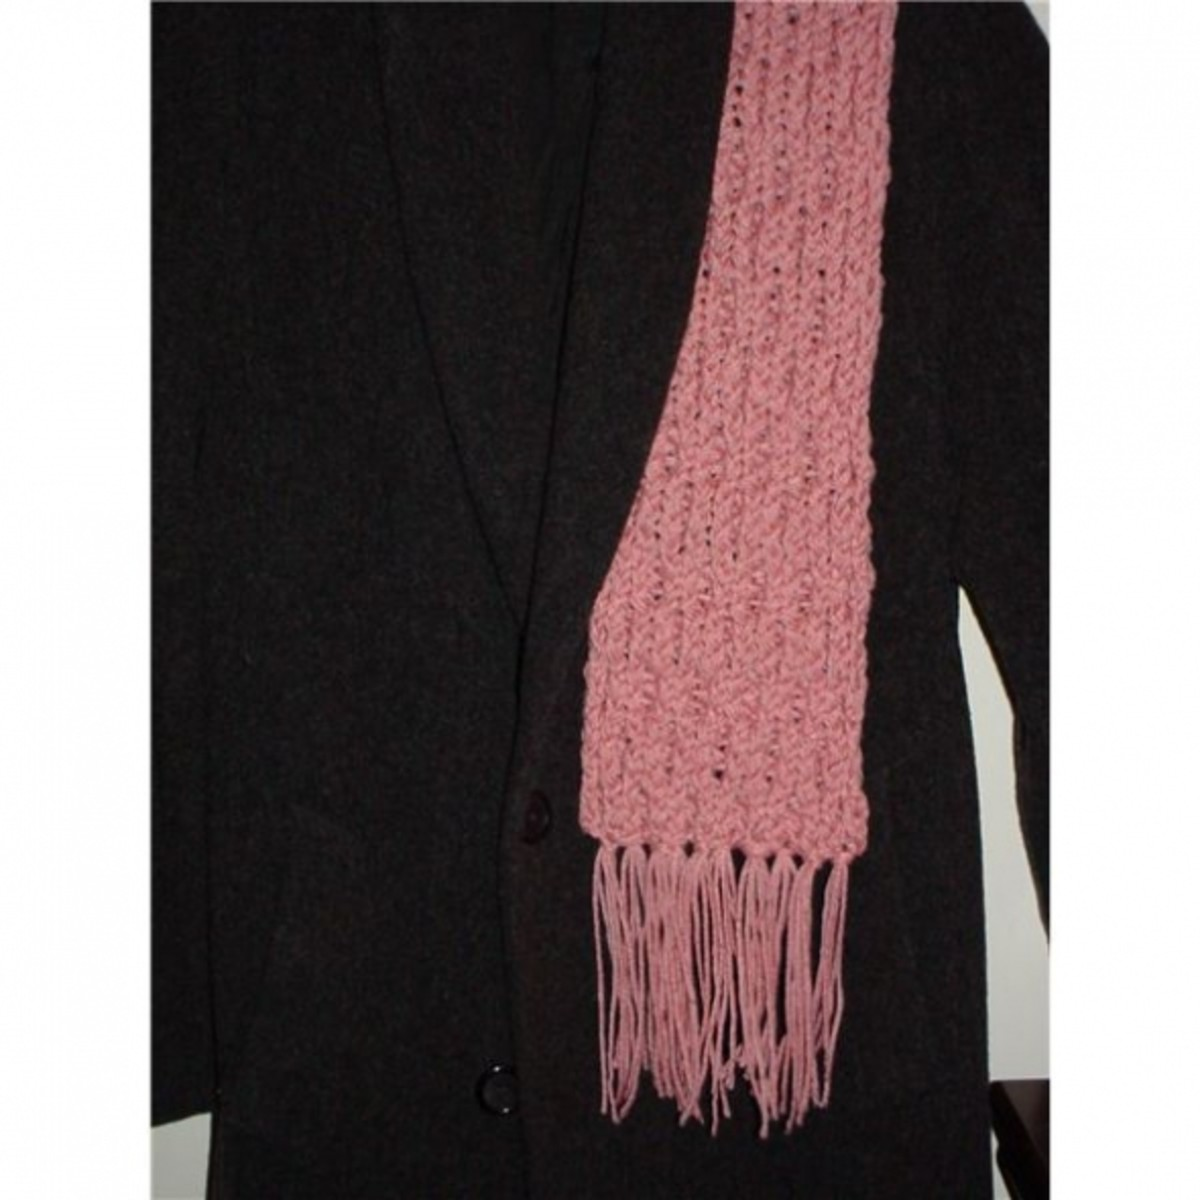 Scarf Knitted Using Honeycomb Stitch on the Knifty Knitter Loom